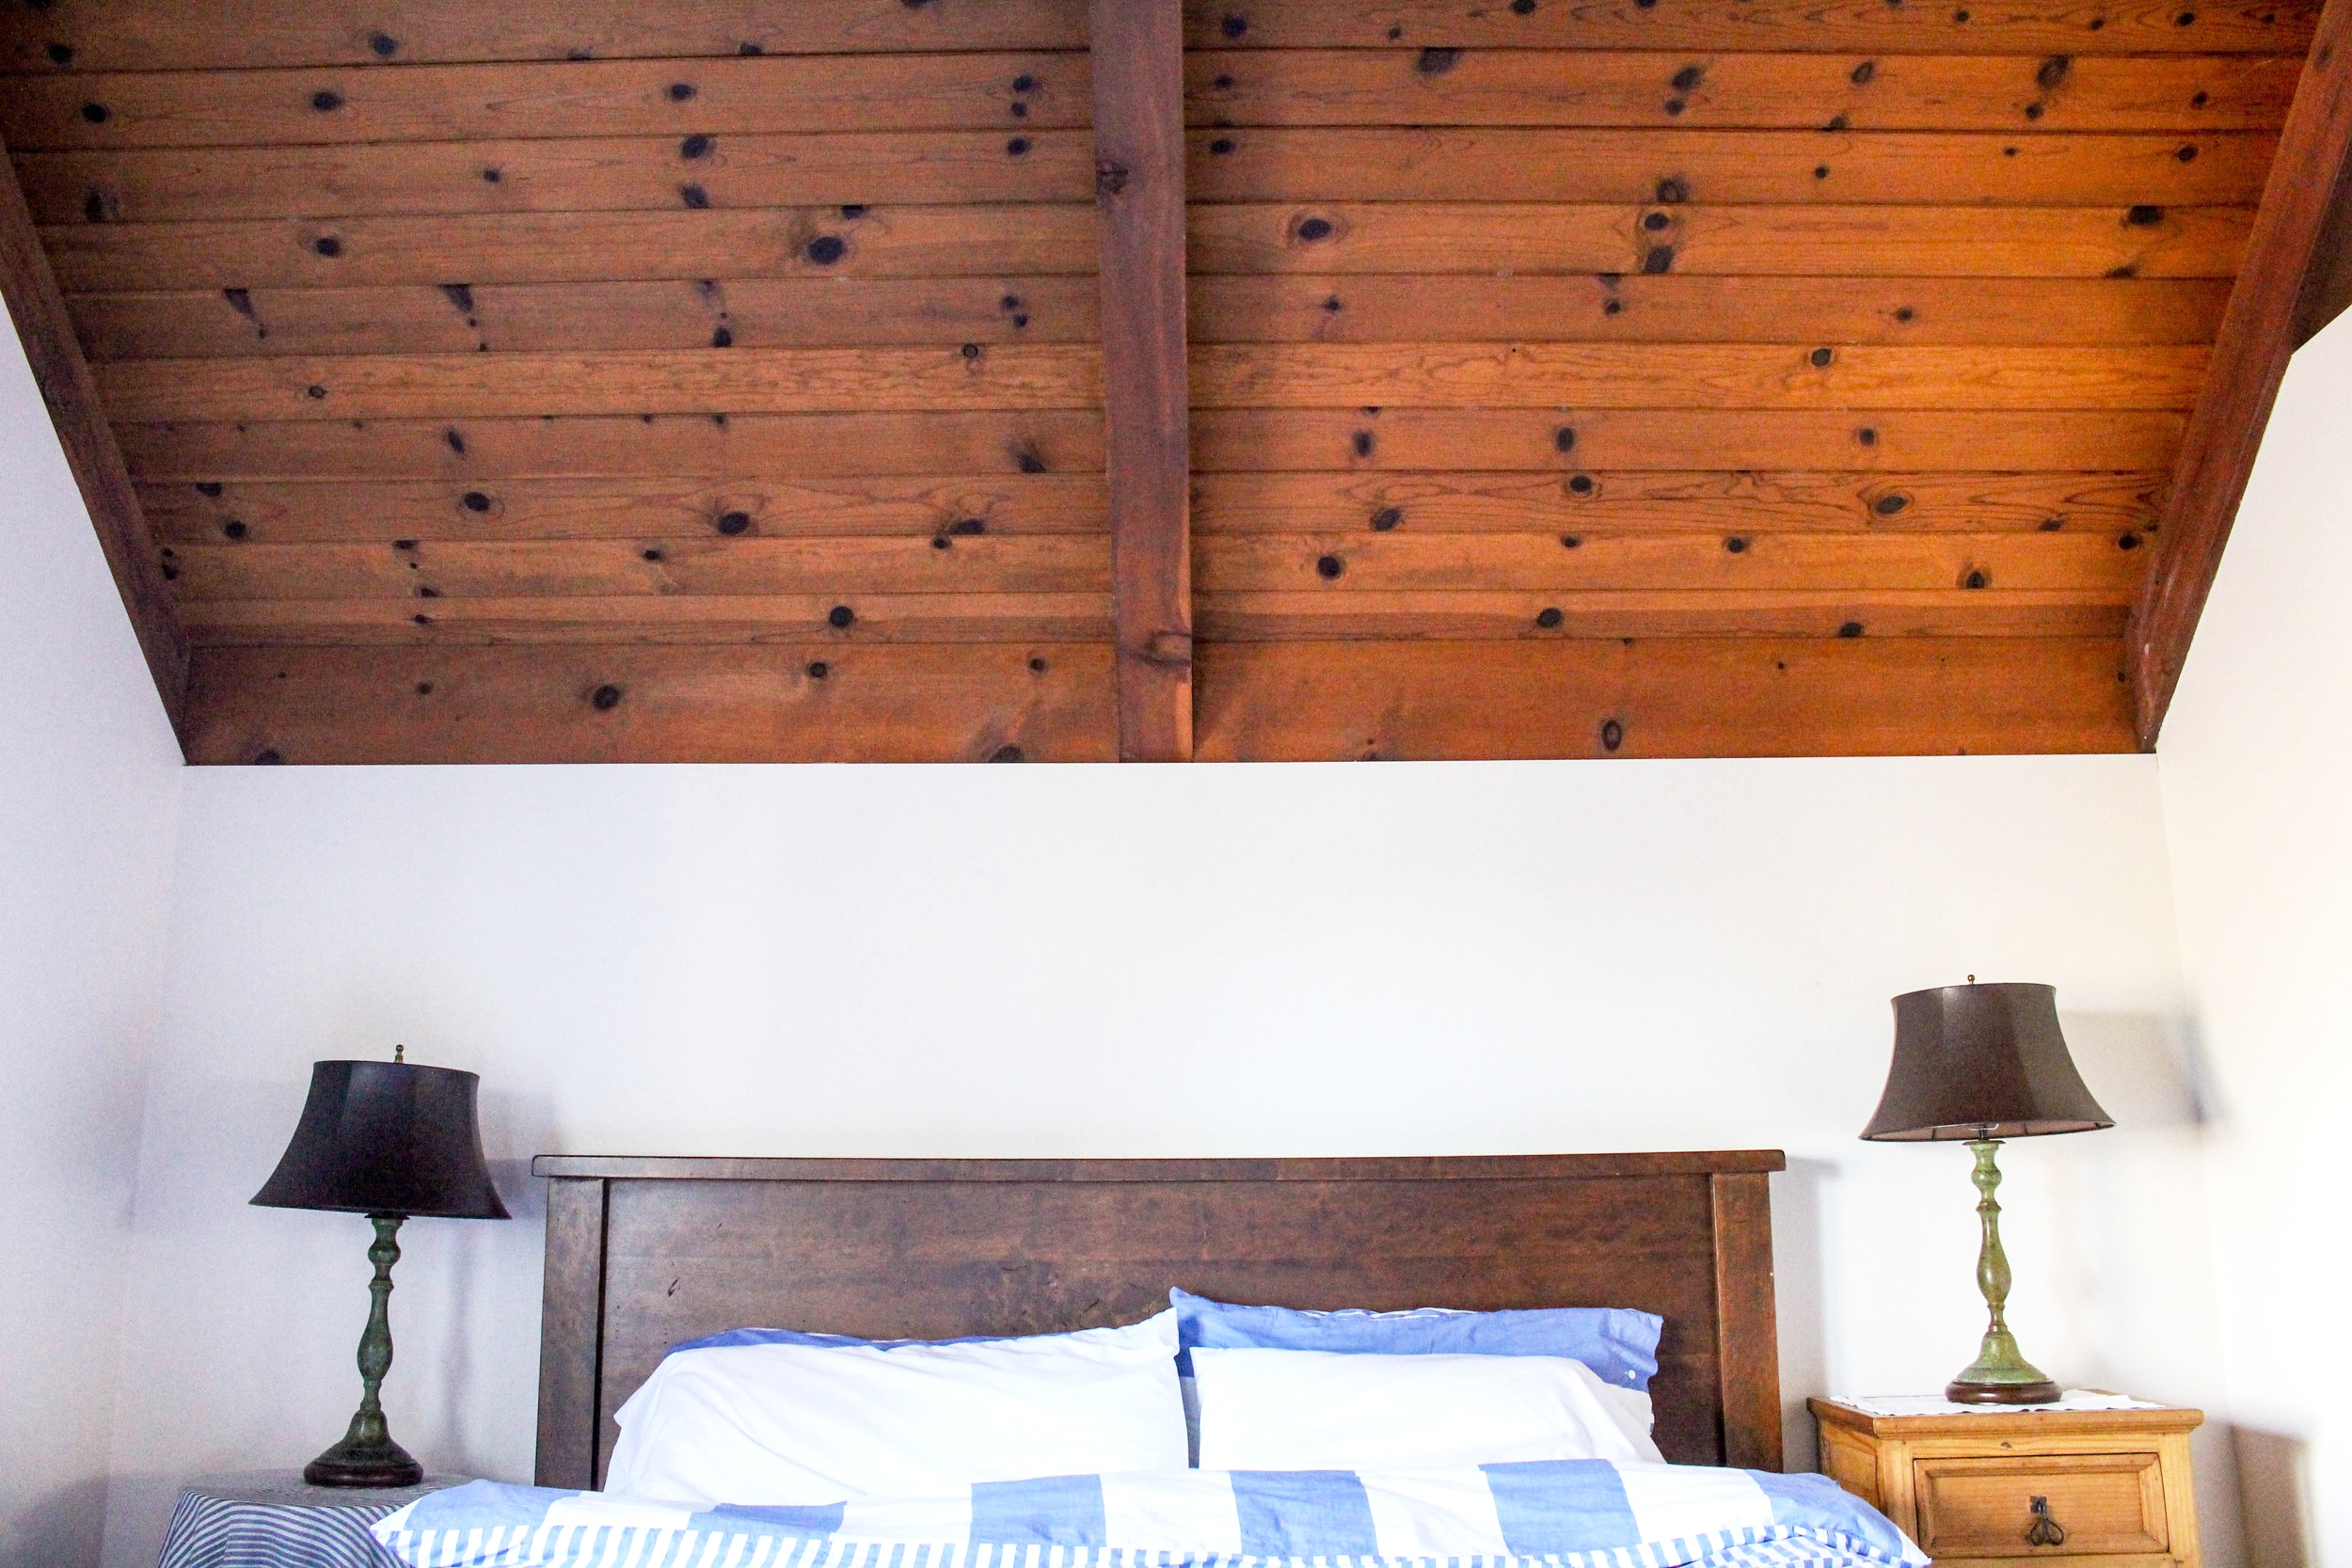 Heart eyes for these cabin ceilings from one of our recent getaways!